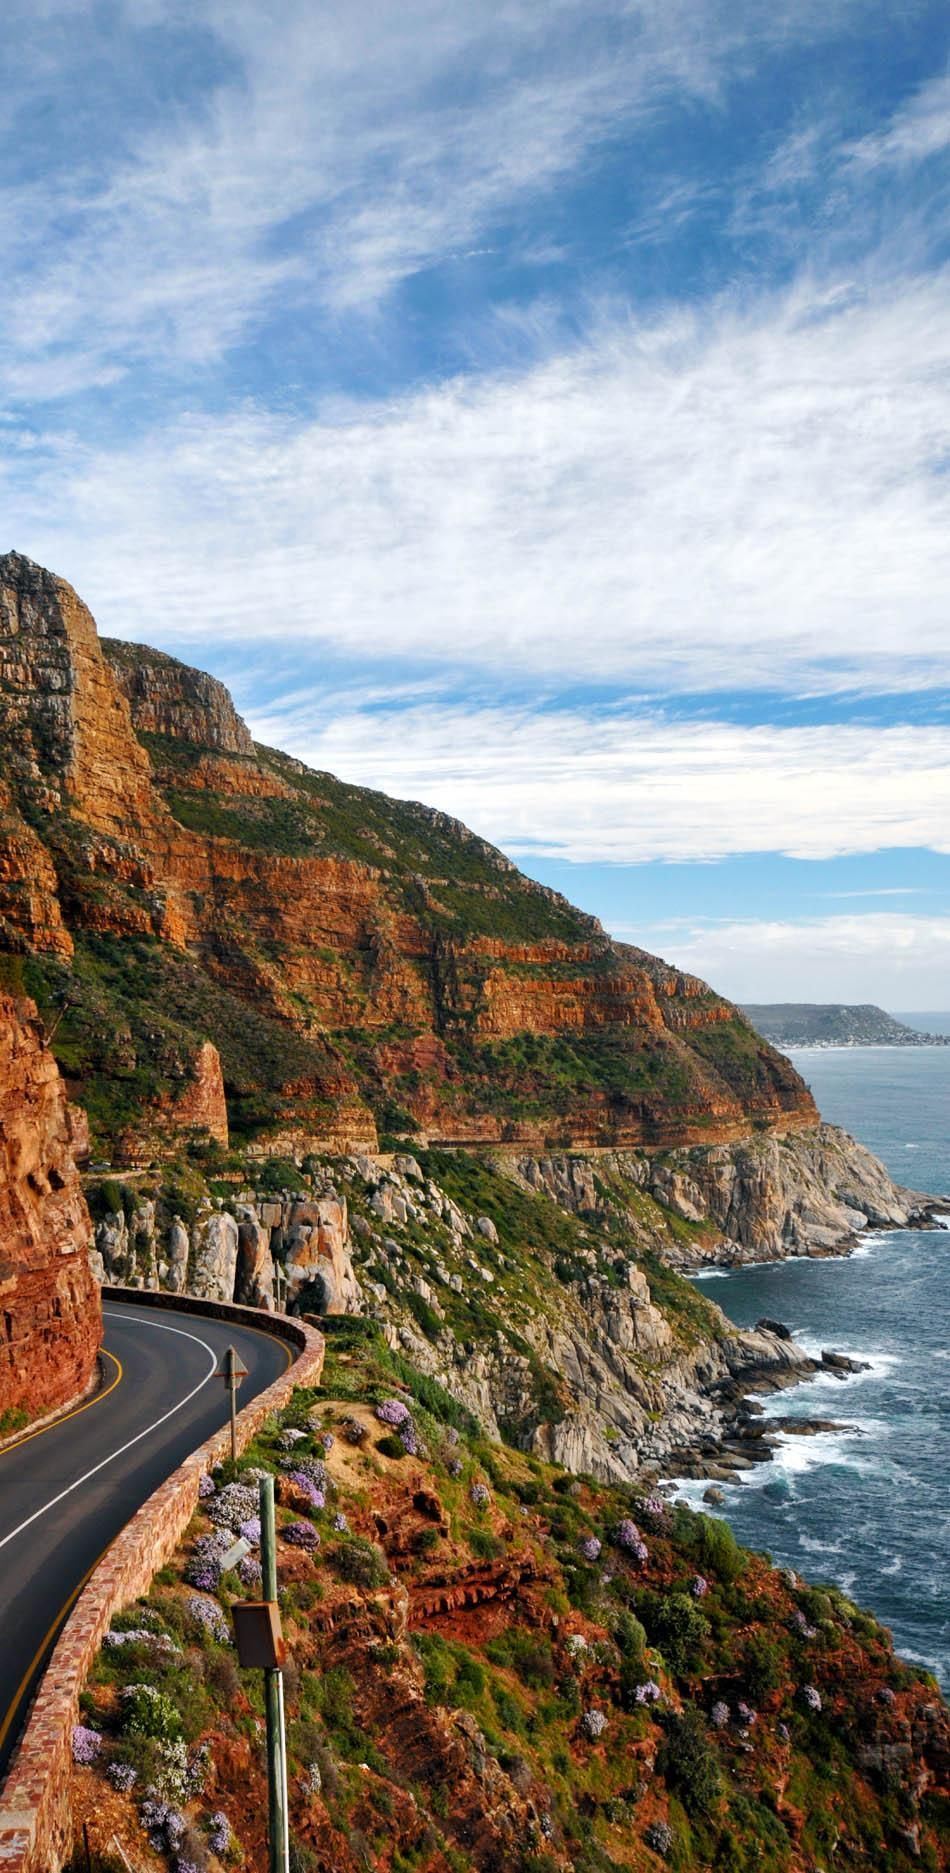 The famous Chapman's peak near Hout bay Cape Town South Africa. | 23 Roads you Have to Drive in Your Lifetime